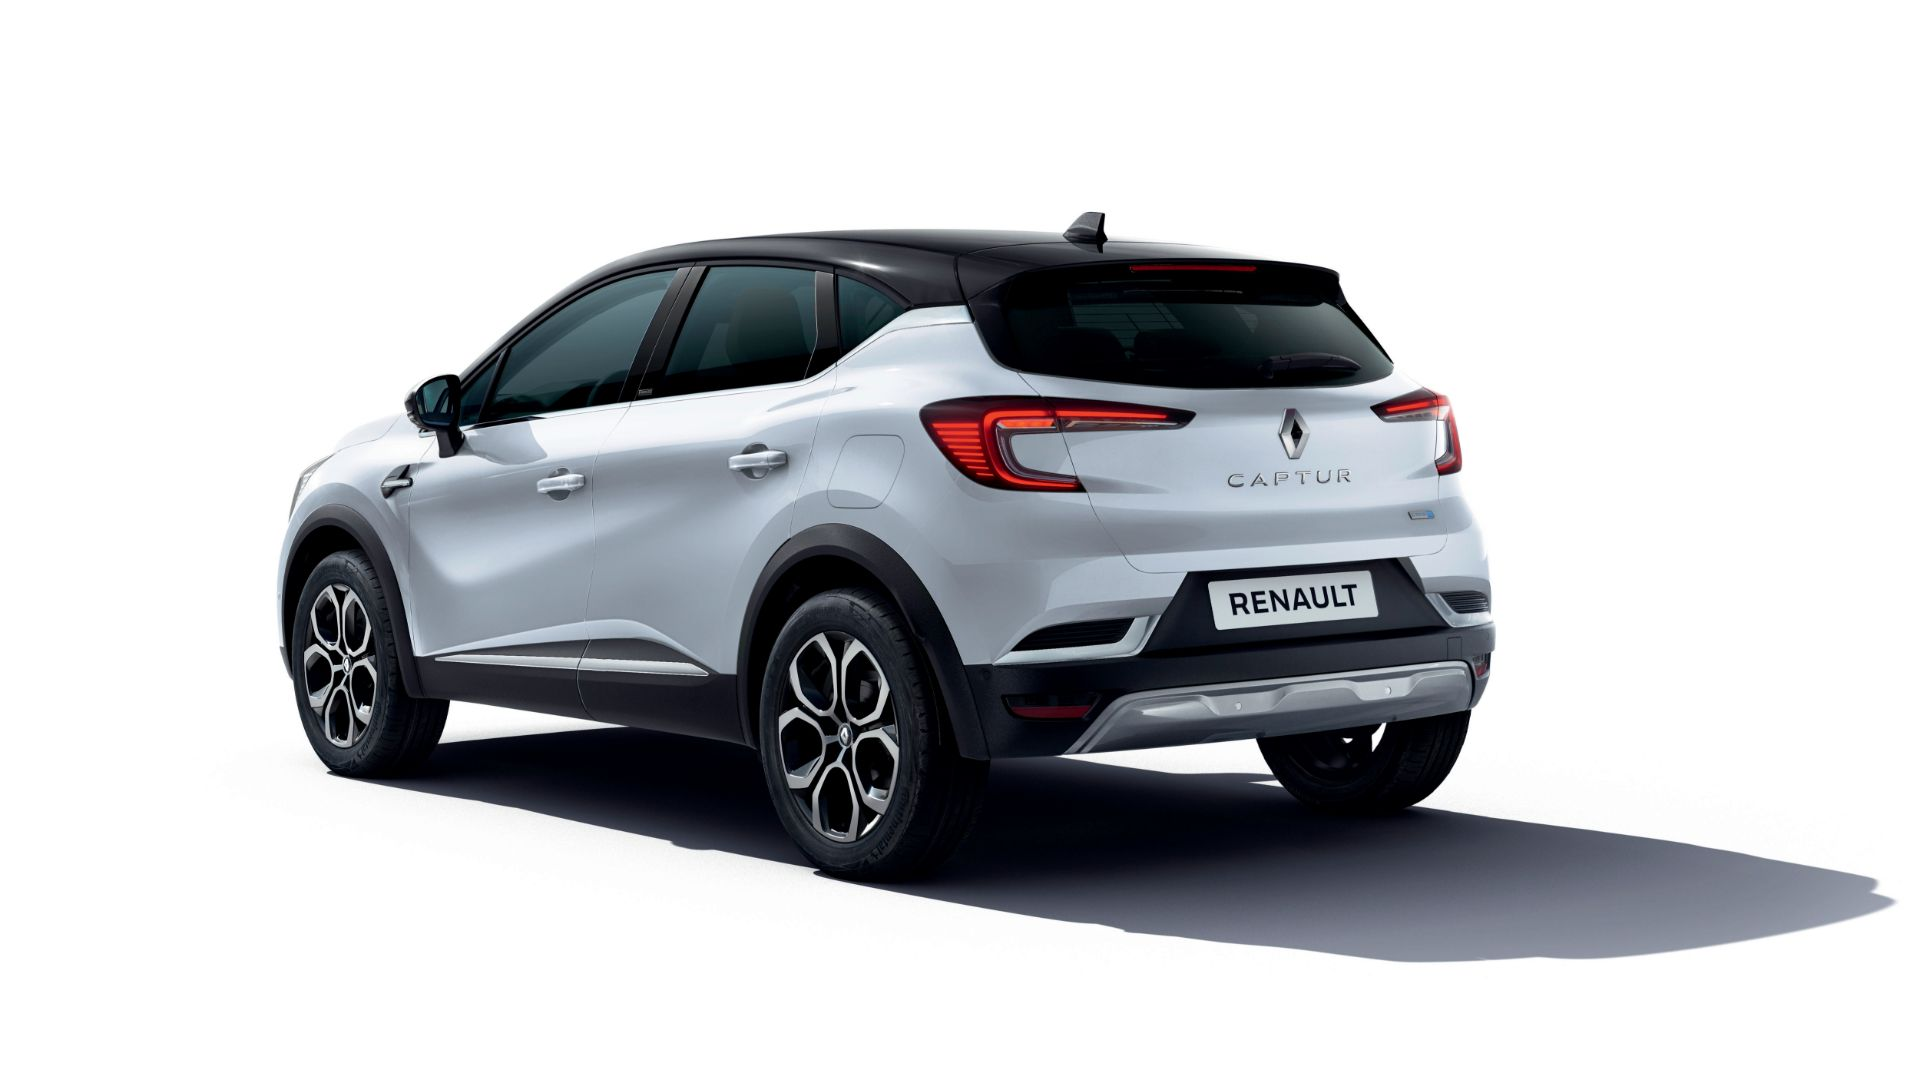 2020 Renault Clio and Captur go hybrid